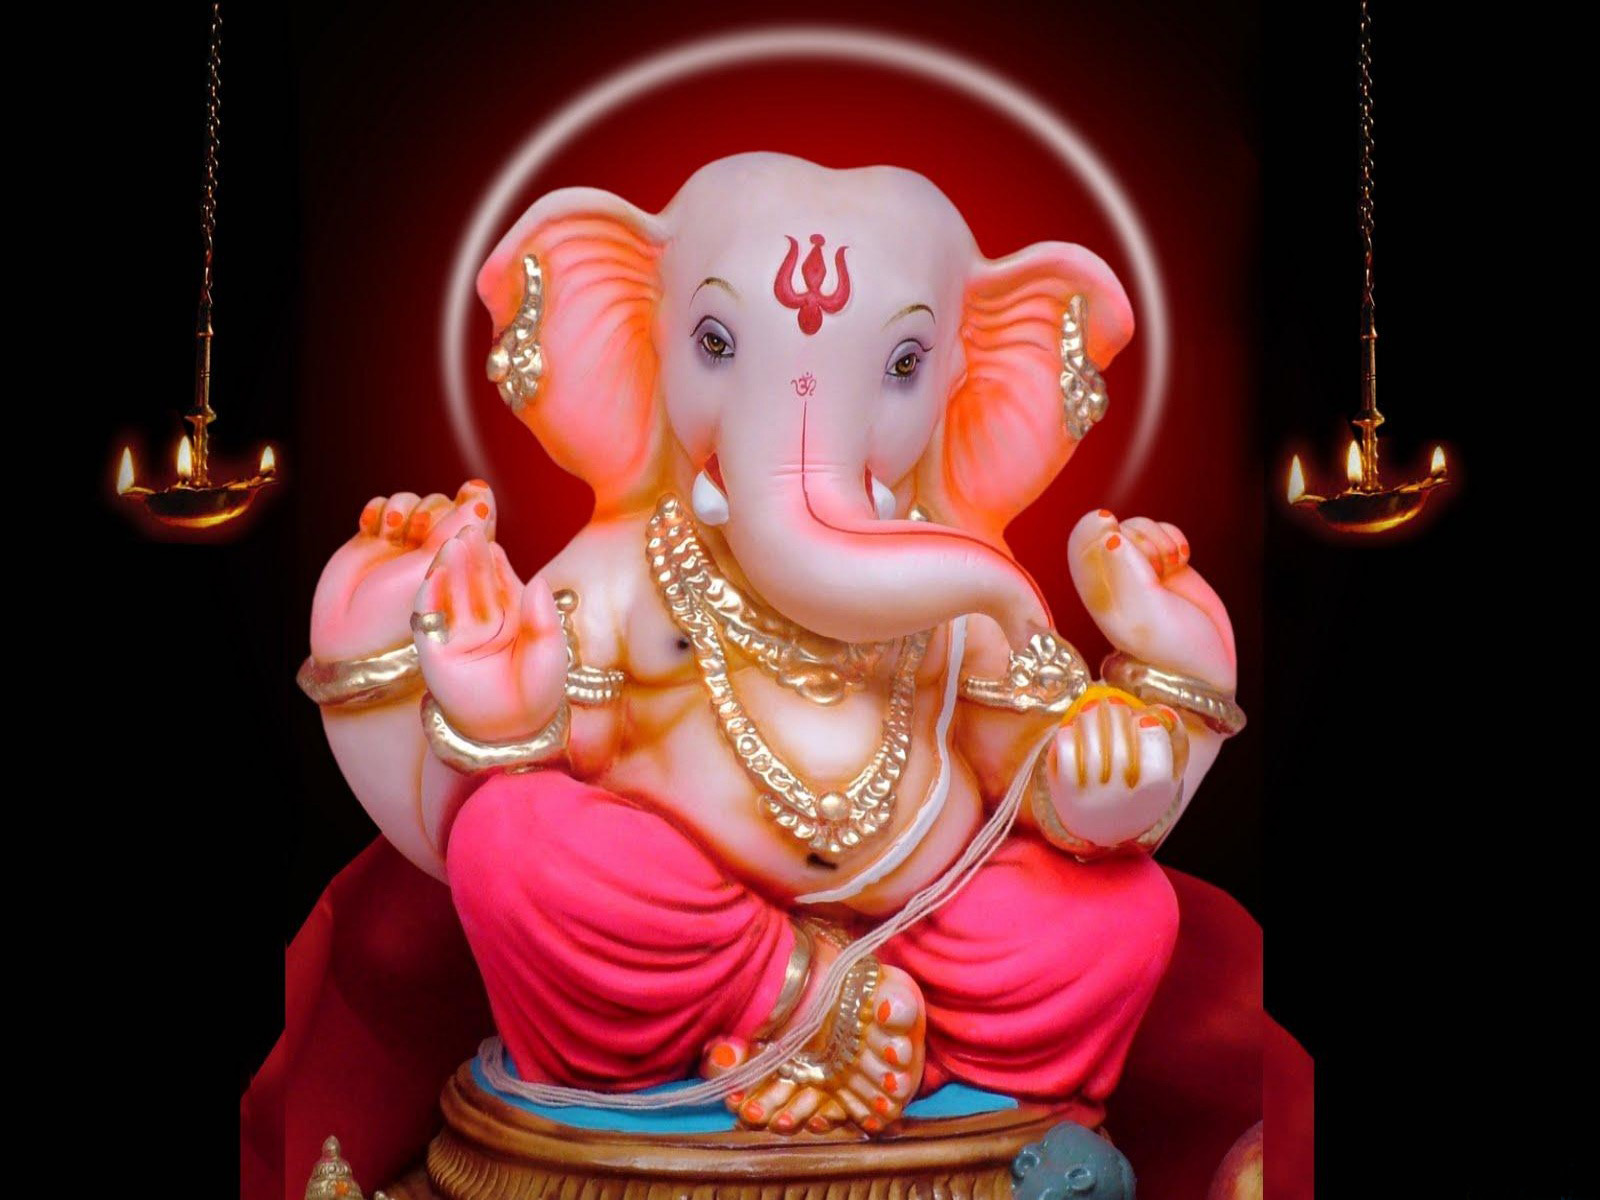 ganesh ji hd image daily pics update hd wallpapers download